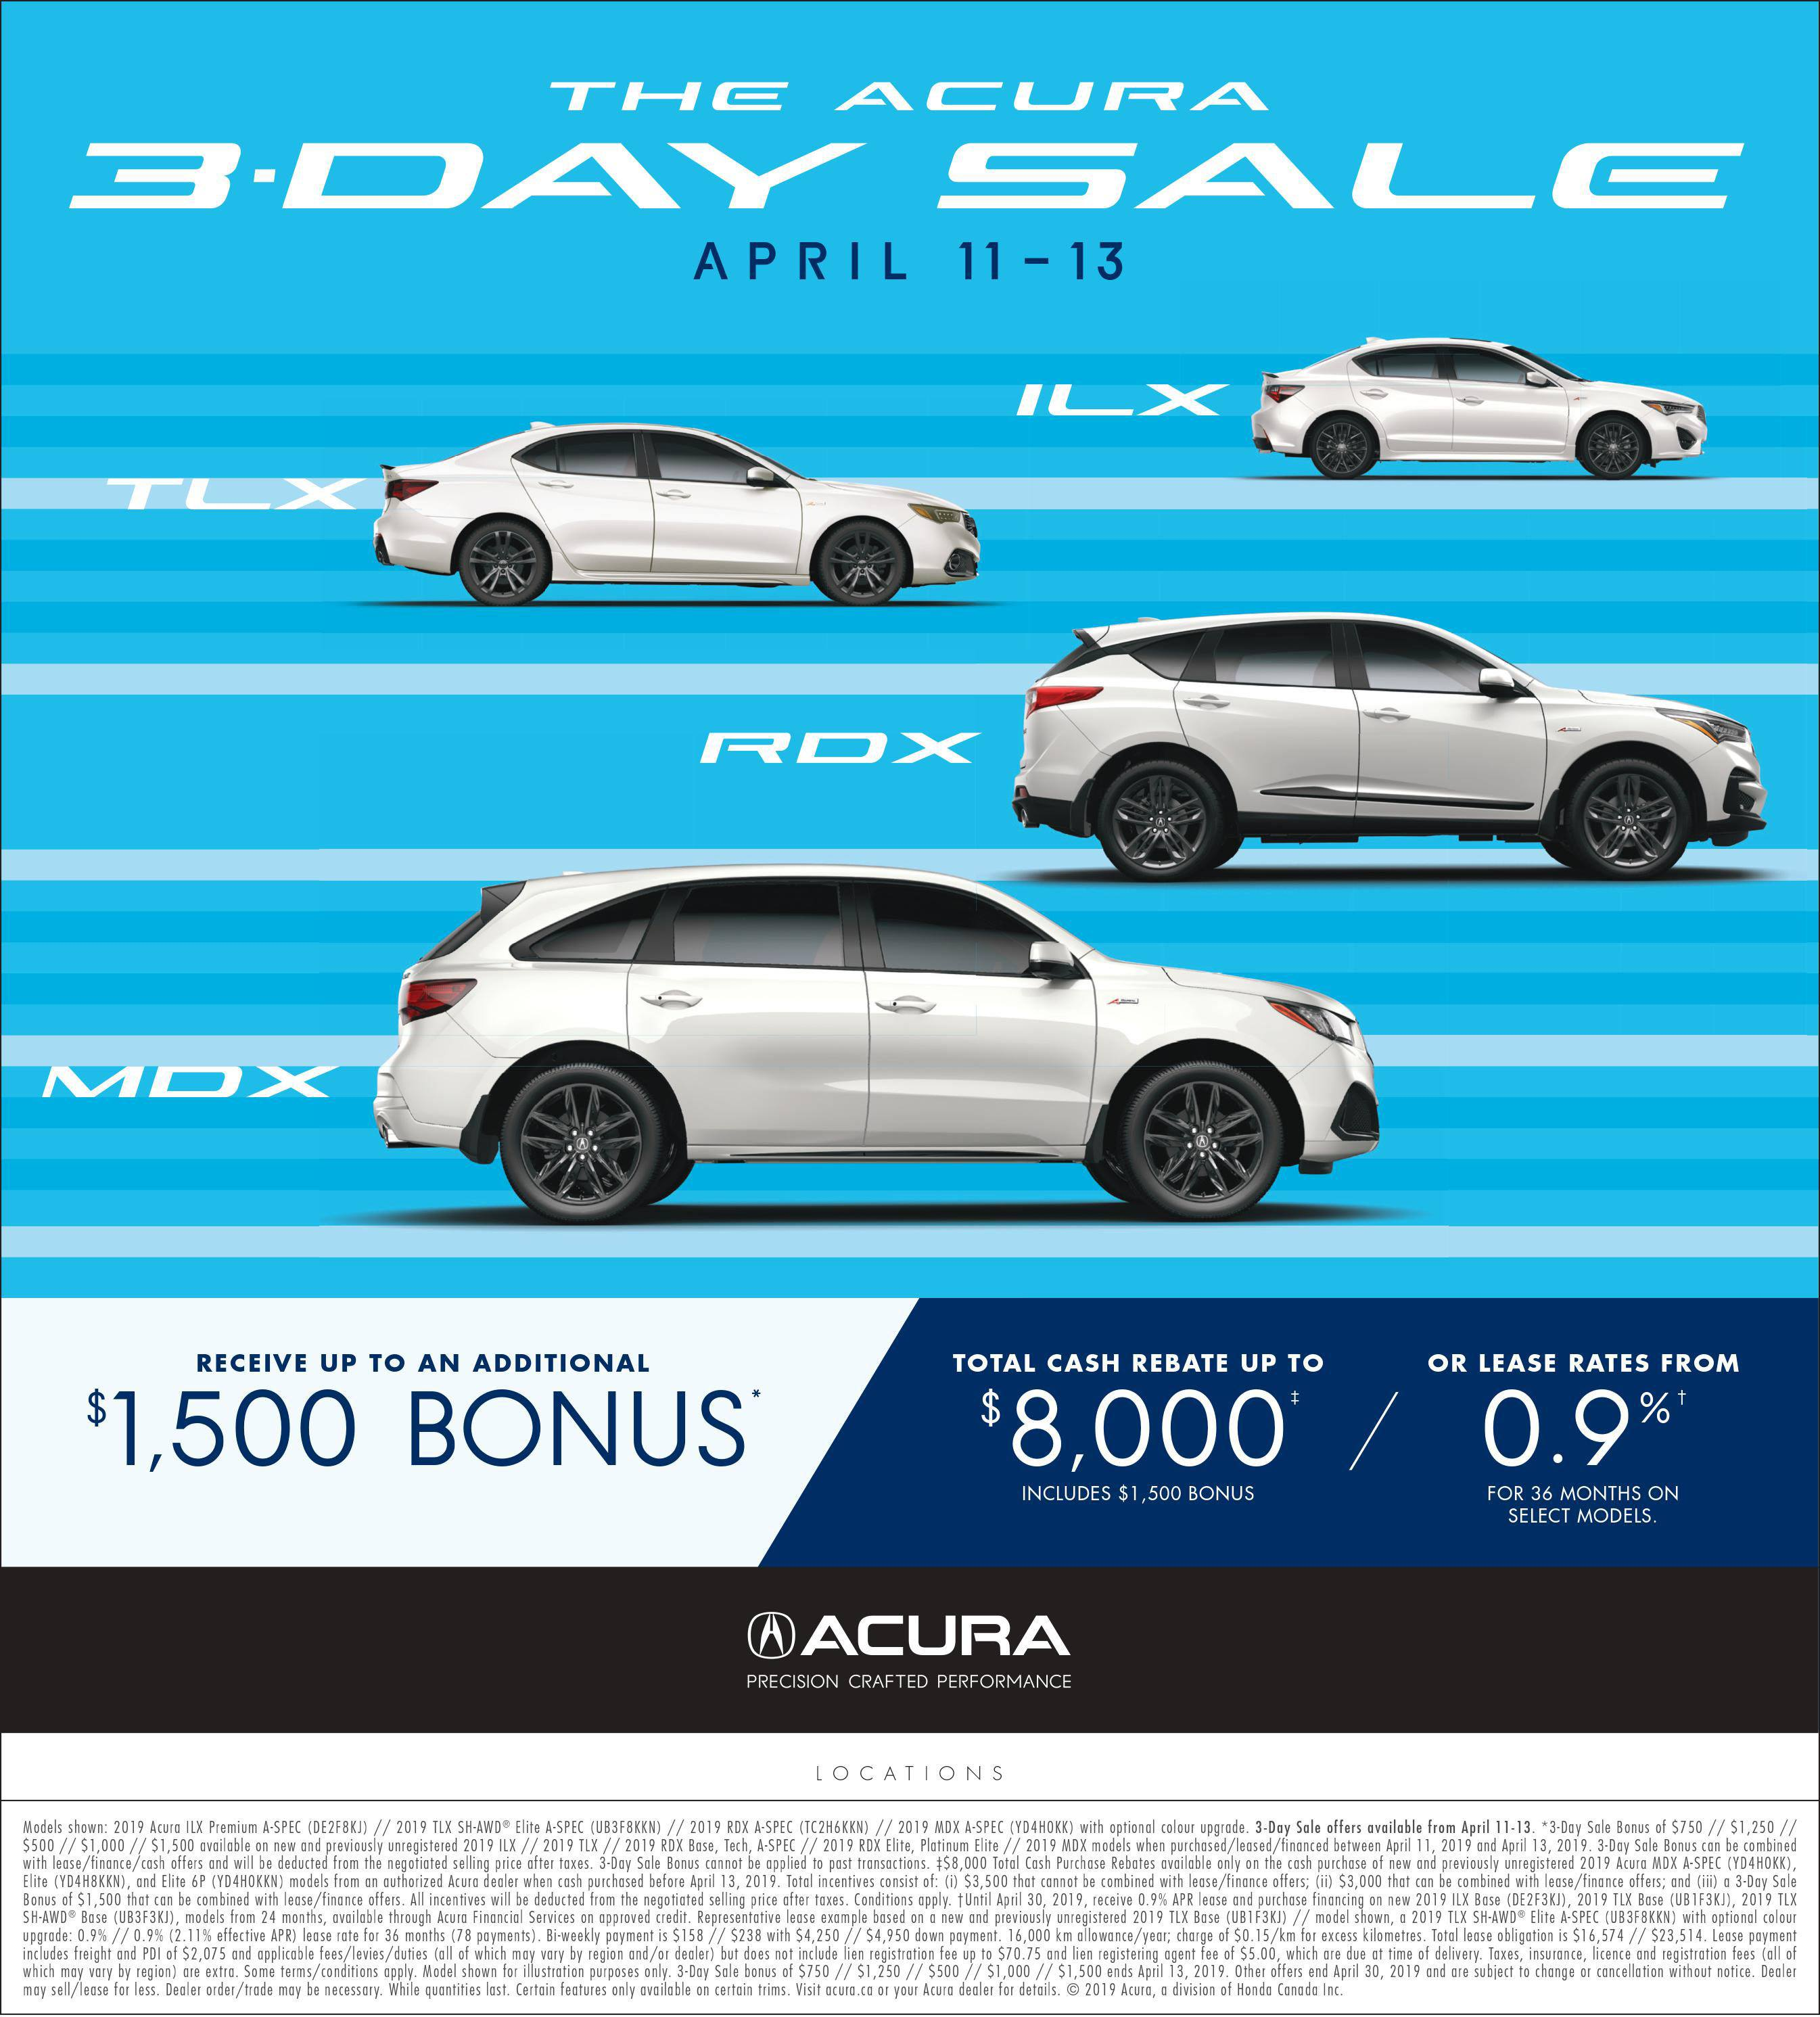 The Acura 3-Day Sale April 11-13